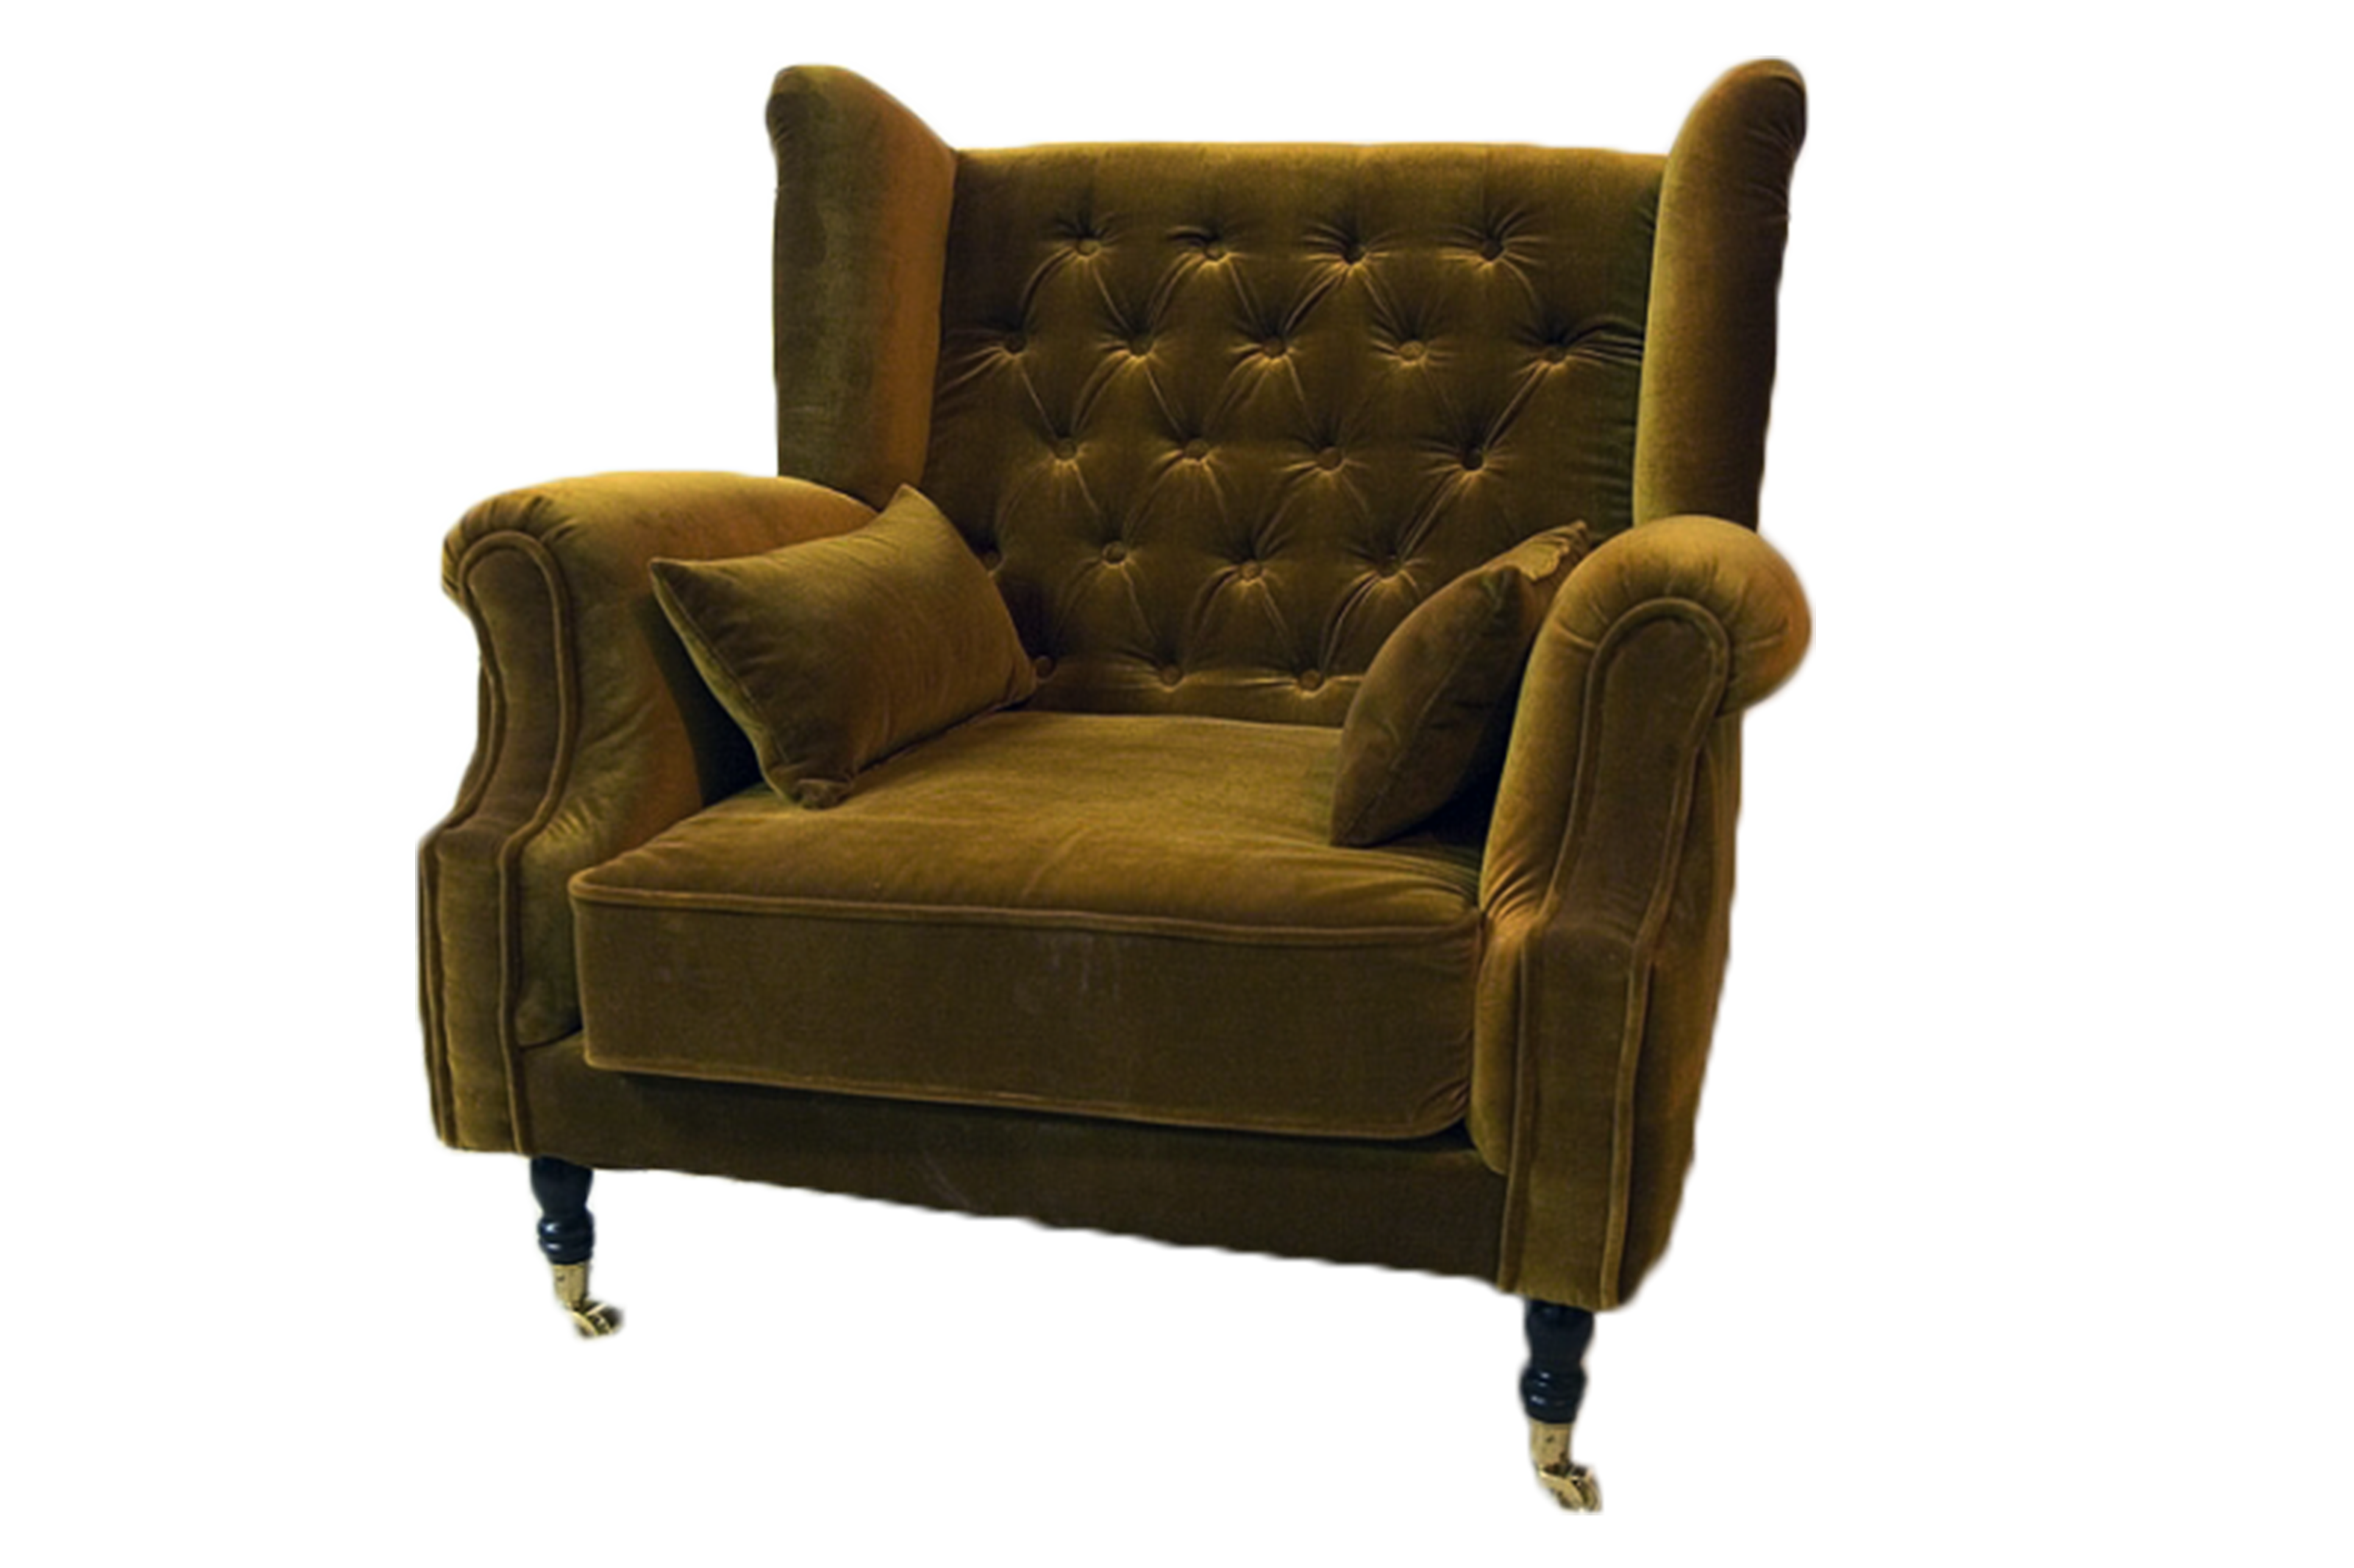 chesterfield sessel ohrensessel ledersofas liverpool i designersofa. Black Bedroom Furniture Sets. Home Design Ideas